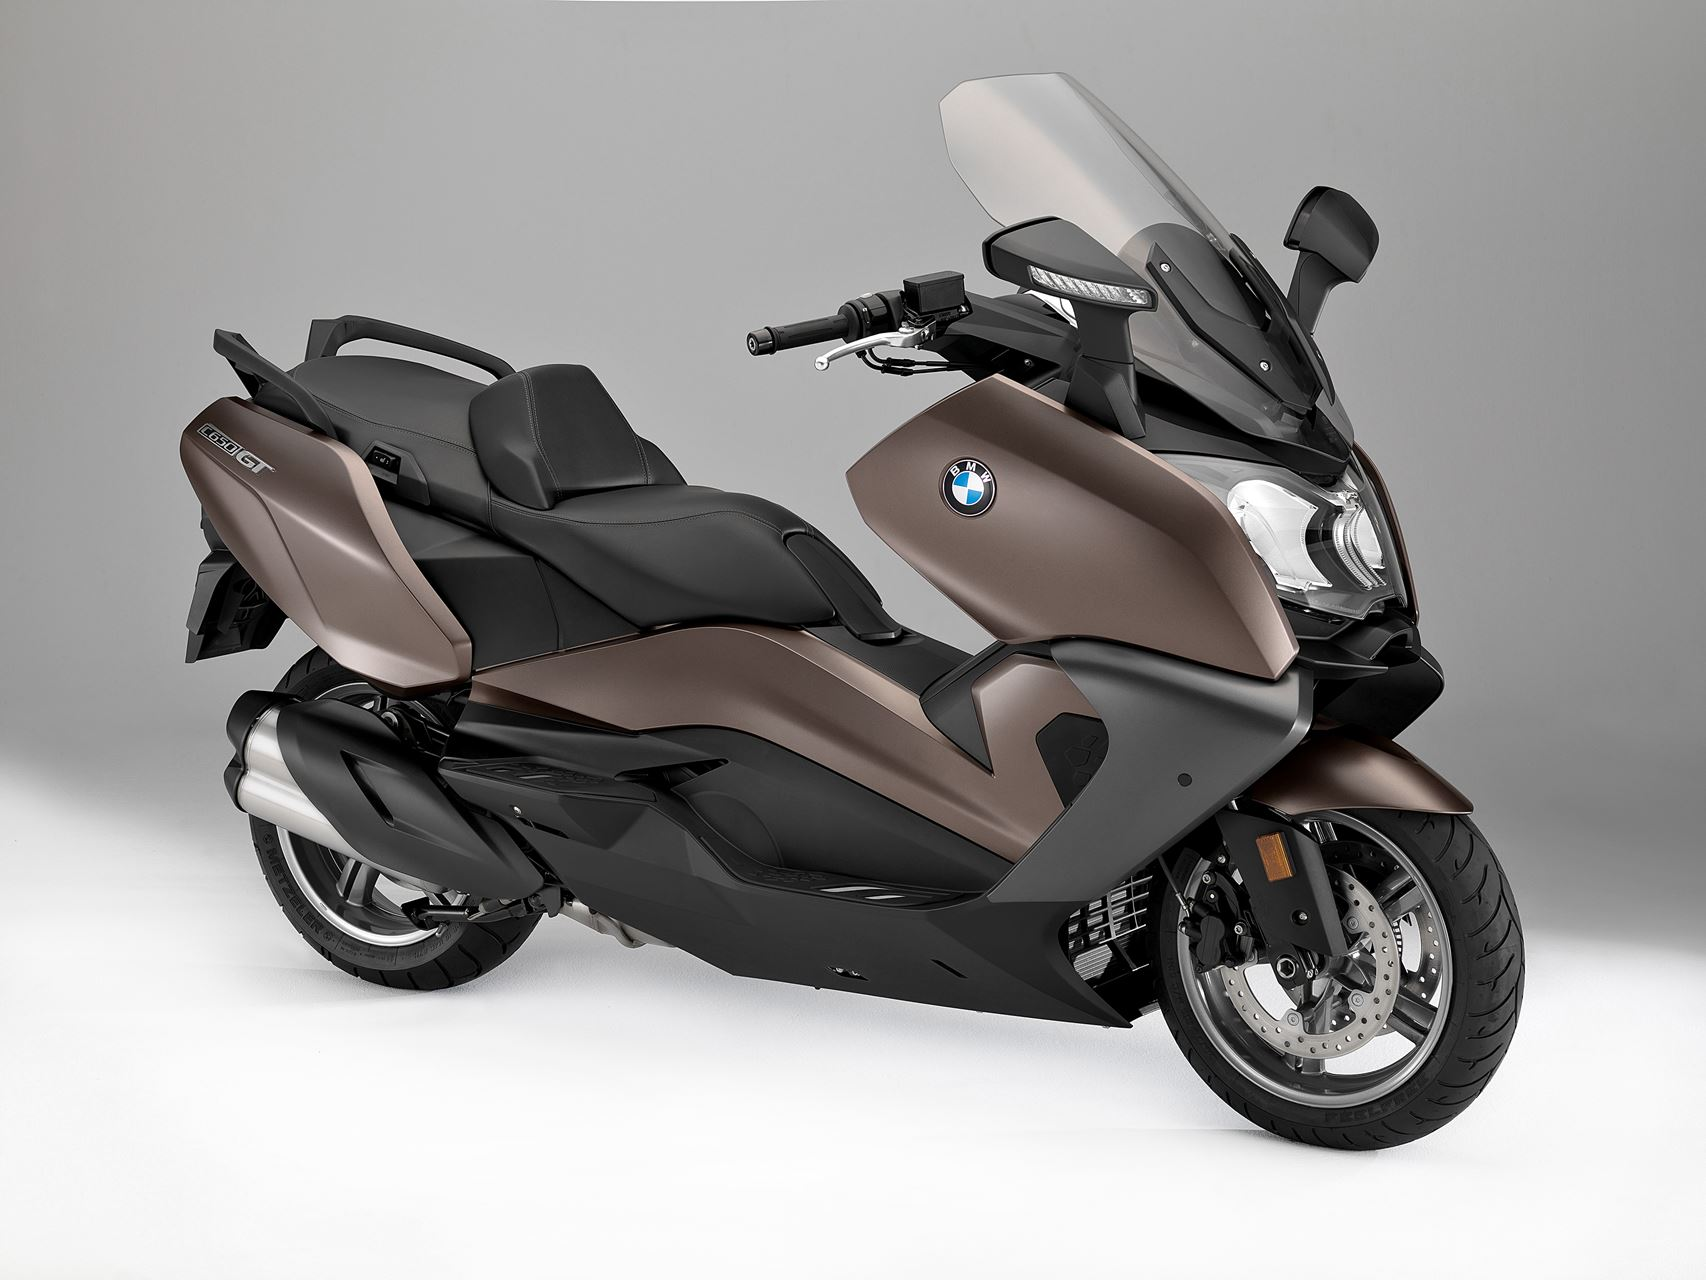 bmw c 650 gt scooter urban mobility andar de moto. Black Bedroom Furniture Sets. Home Design Ideas